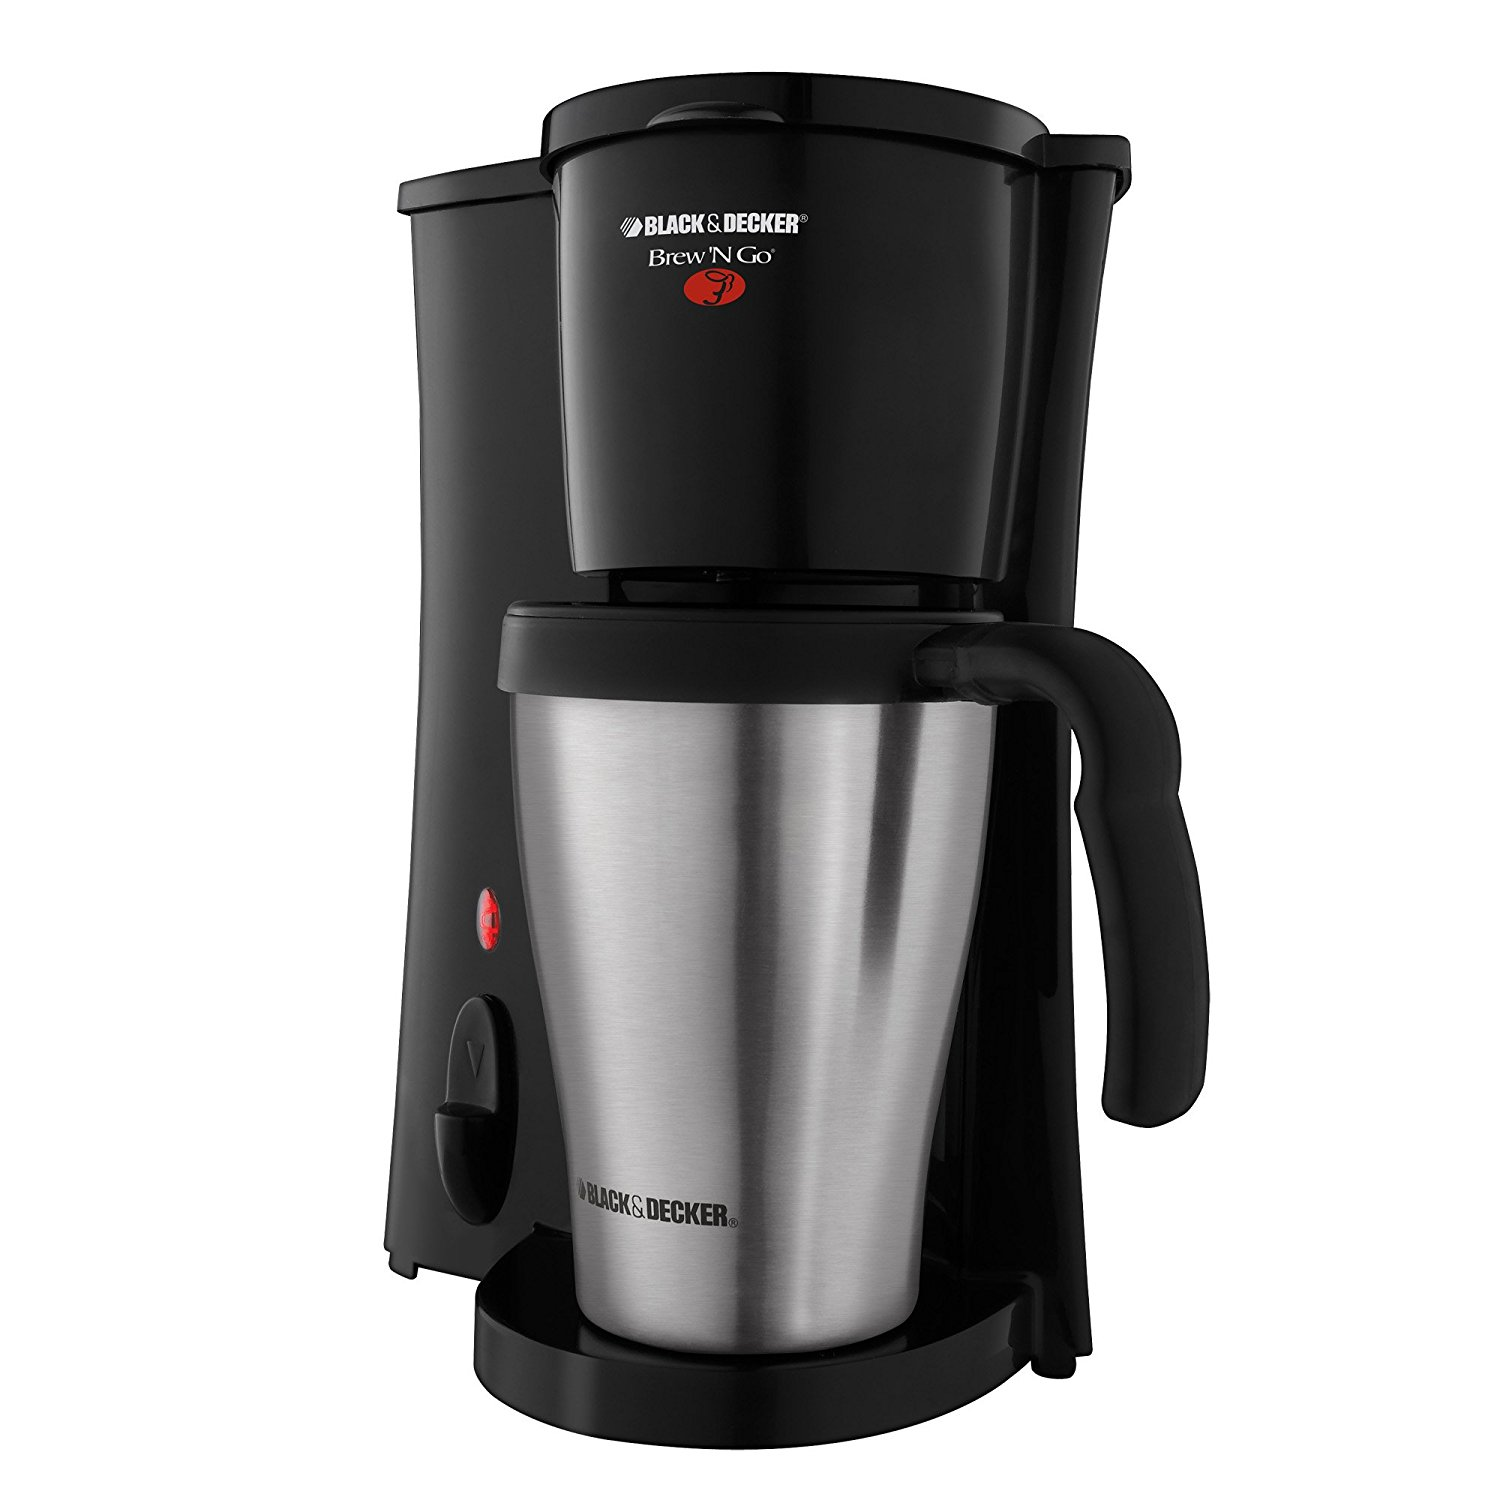 Black & Decker Brew 'n Go Single Cup Coffee Maker